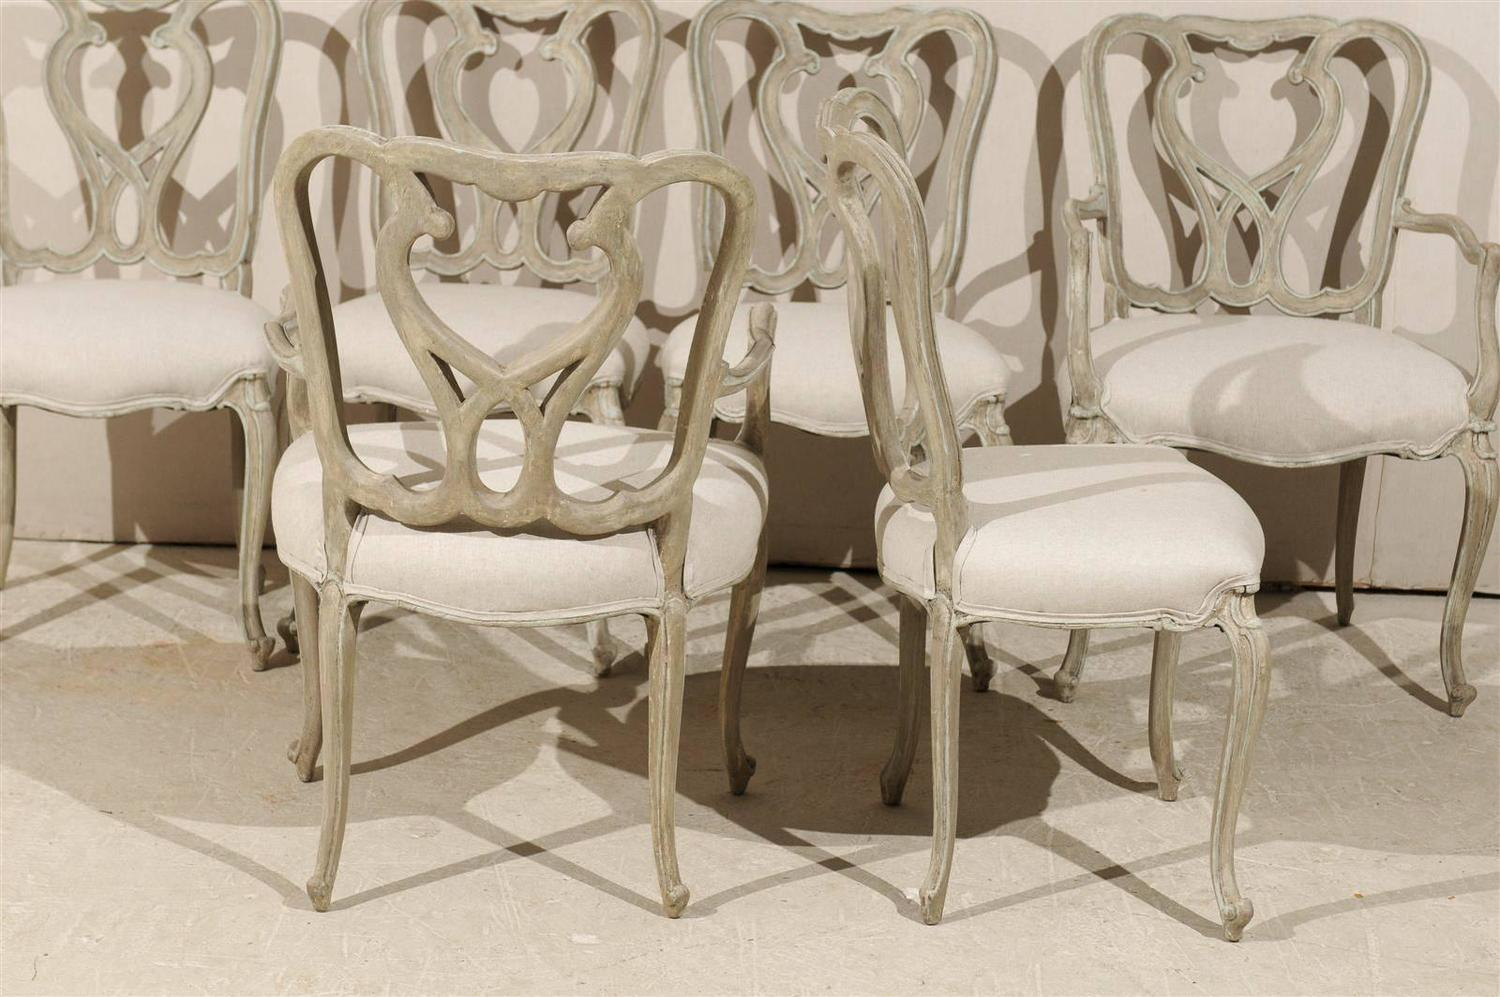 Set Of Six Venetian Style Painted Wood Dining Room Chairs For Sale At 1stdibs